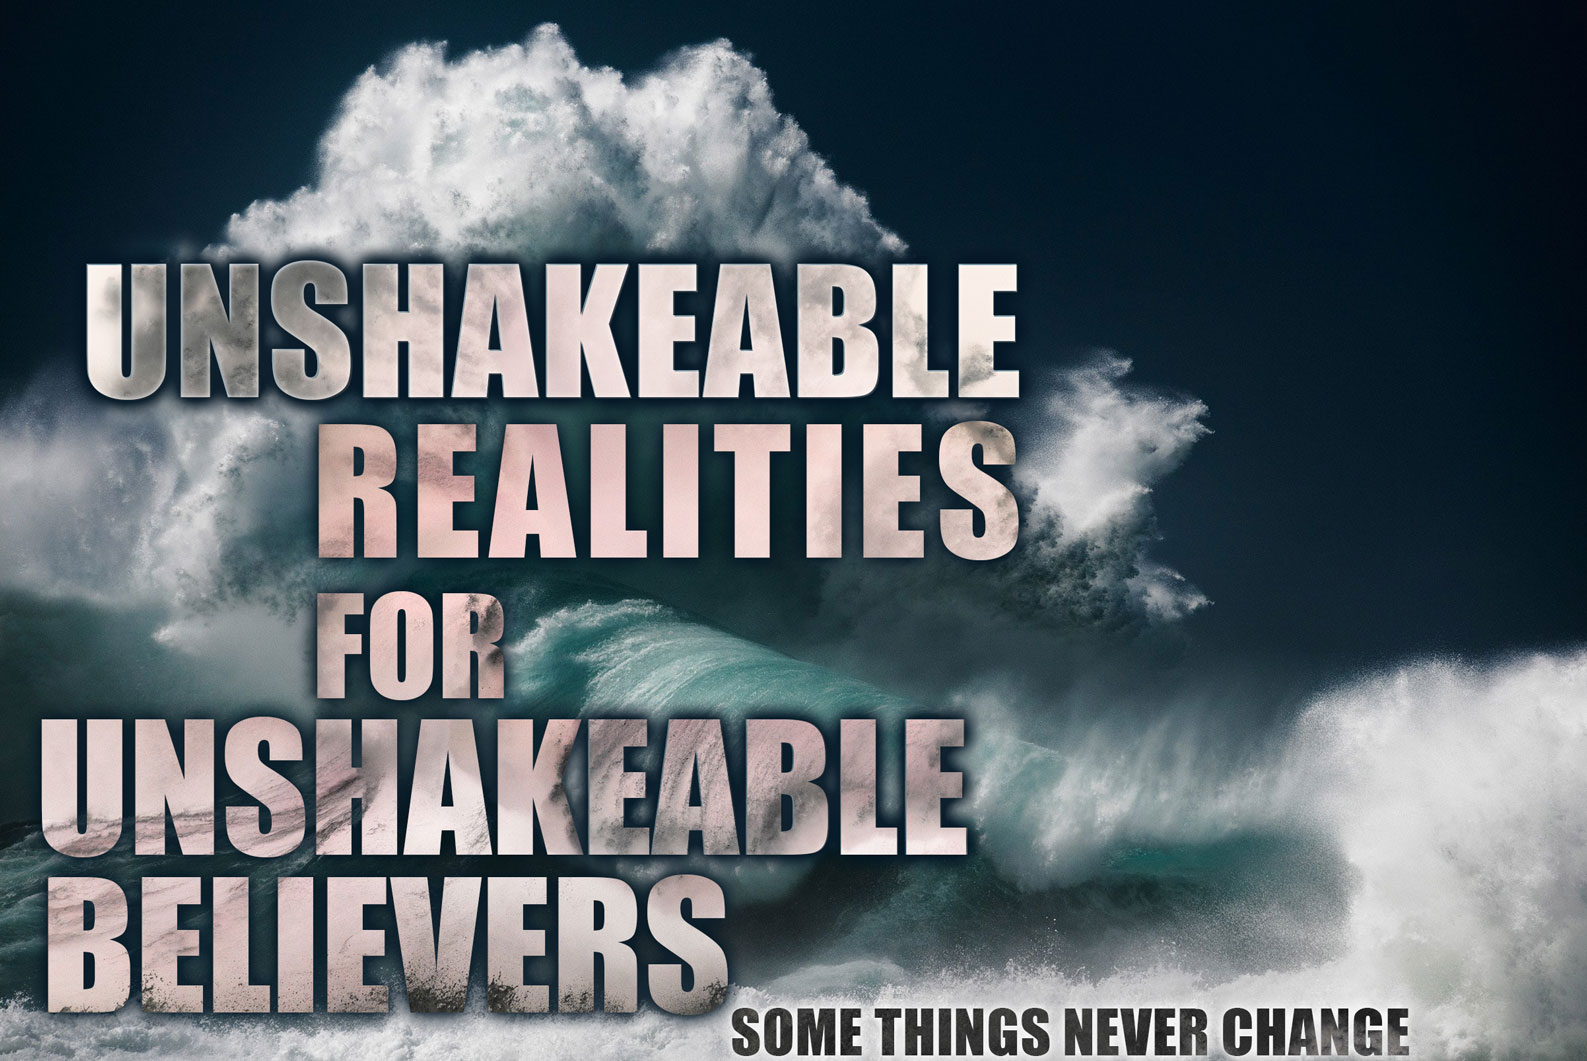 Unshakeable realities - Jesus's Intercession for us